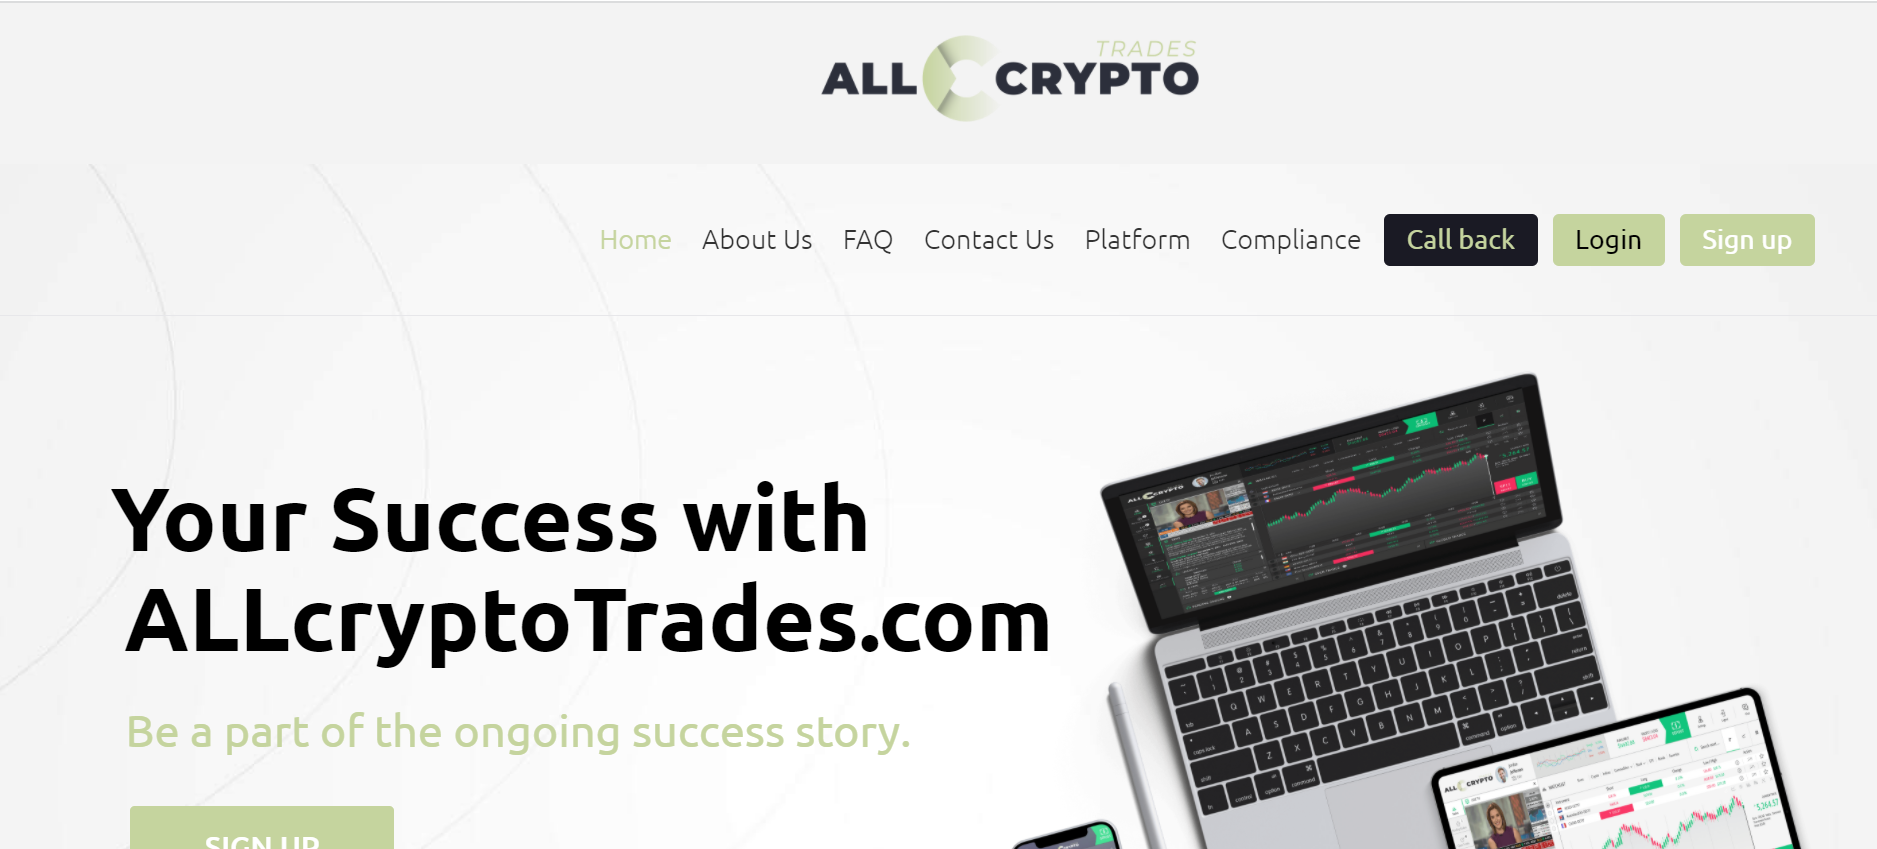 AllCrypto Trades – Can You Trust Them?